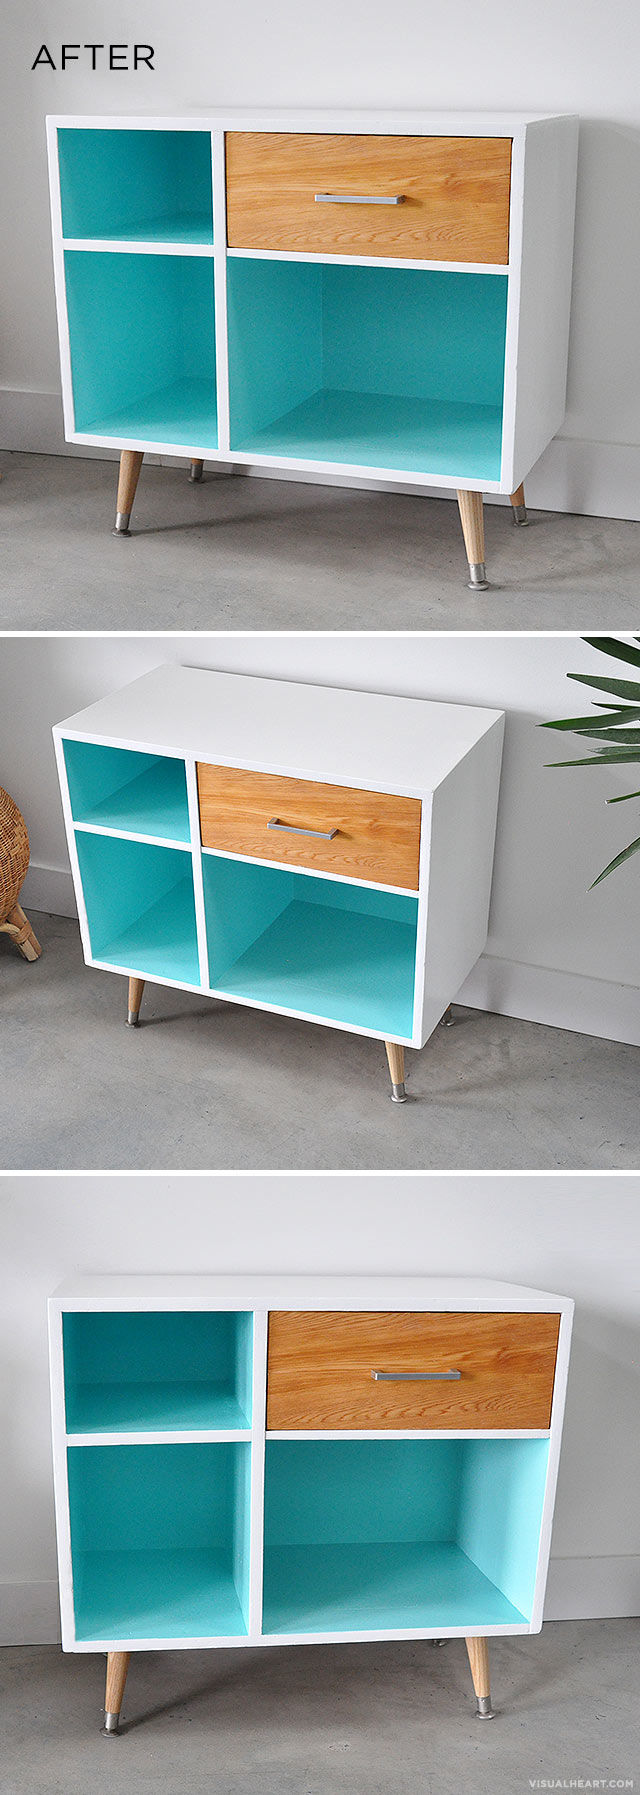 8 Mid century Modern Shelf via Simphome